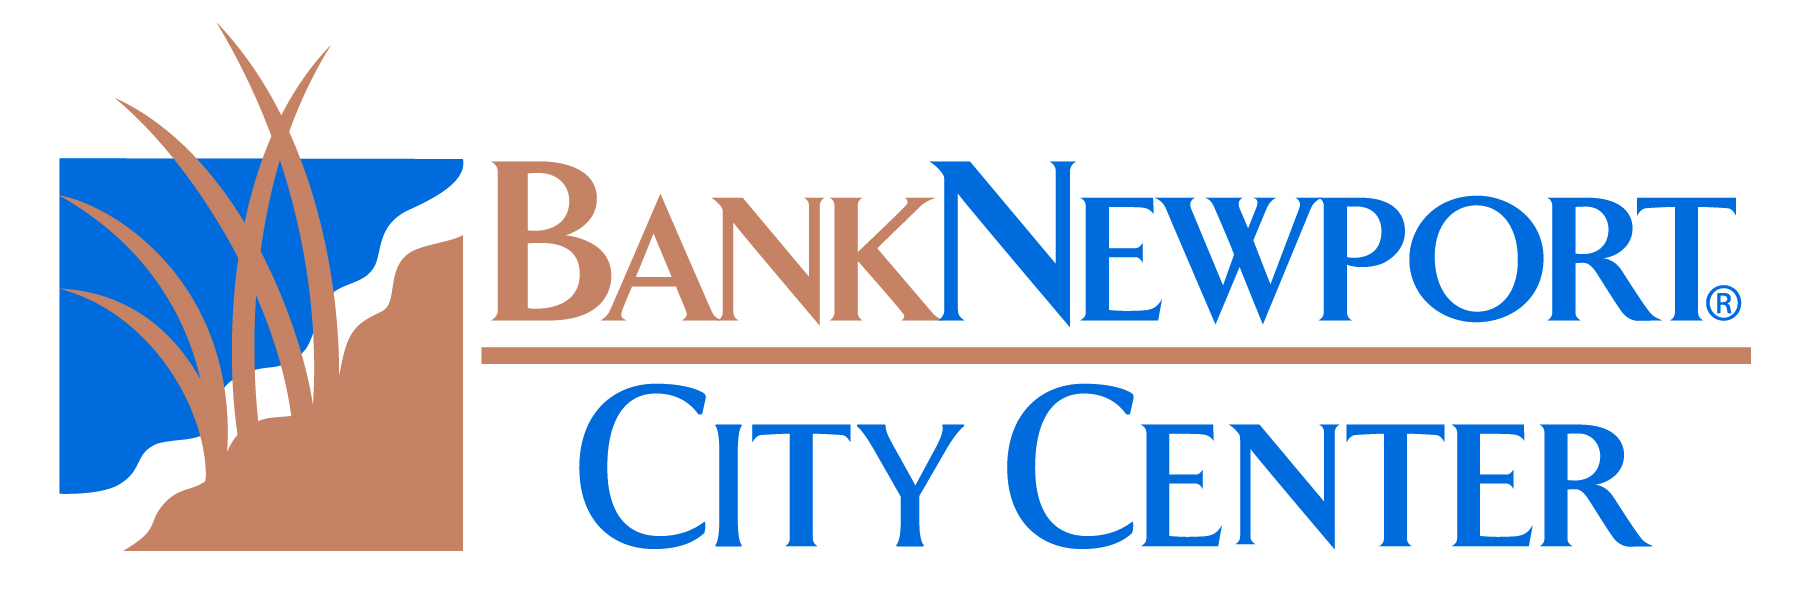 Bank Newport City Center Logo